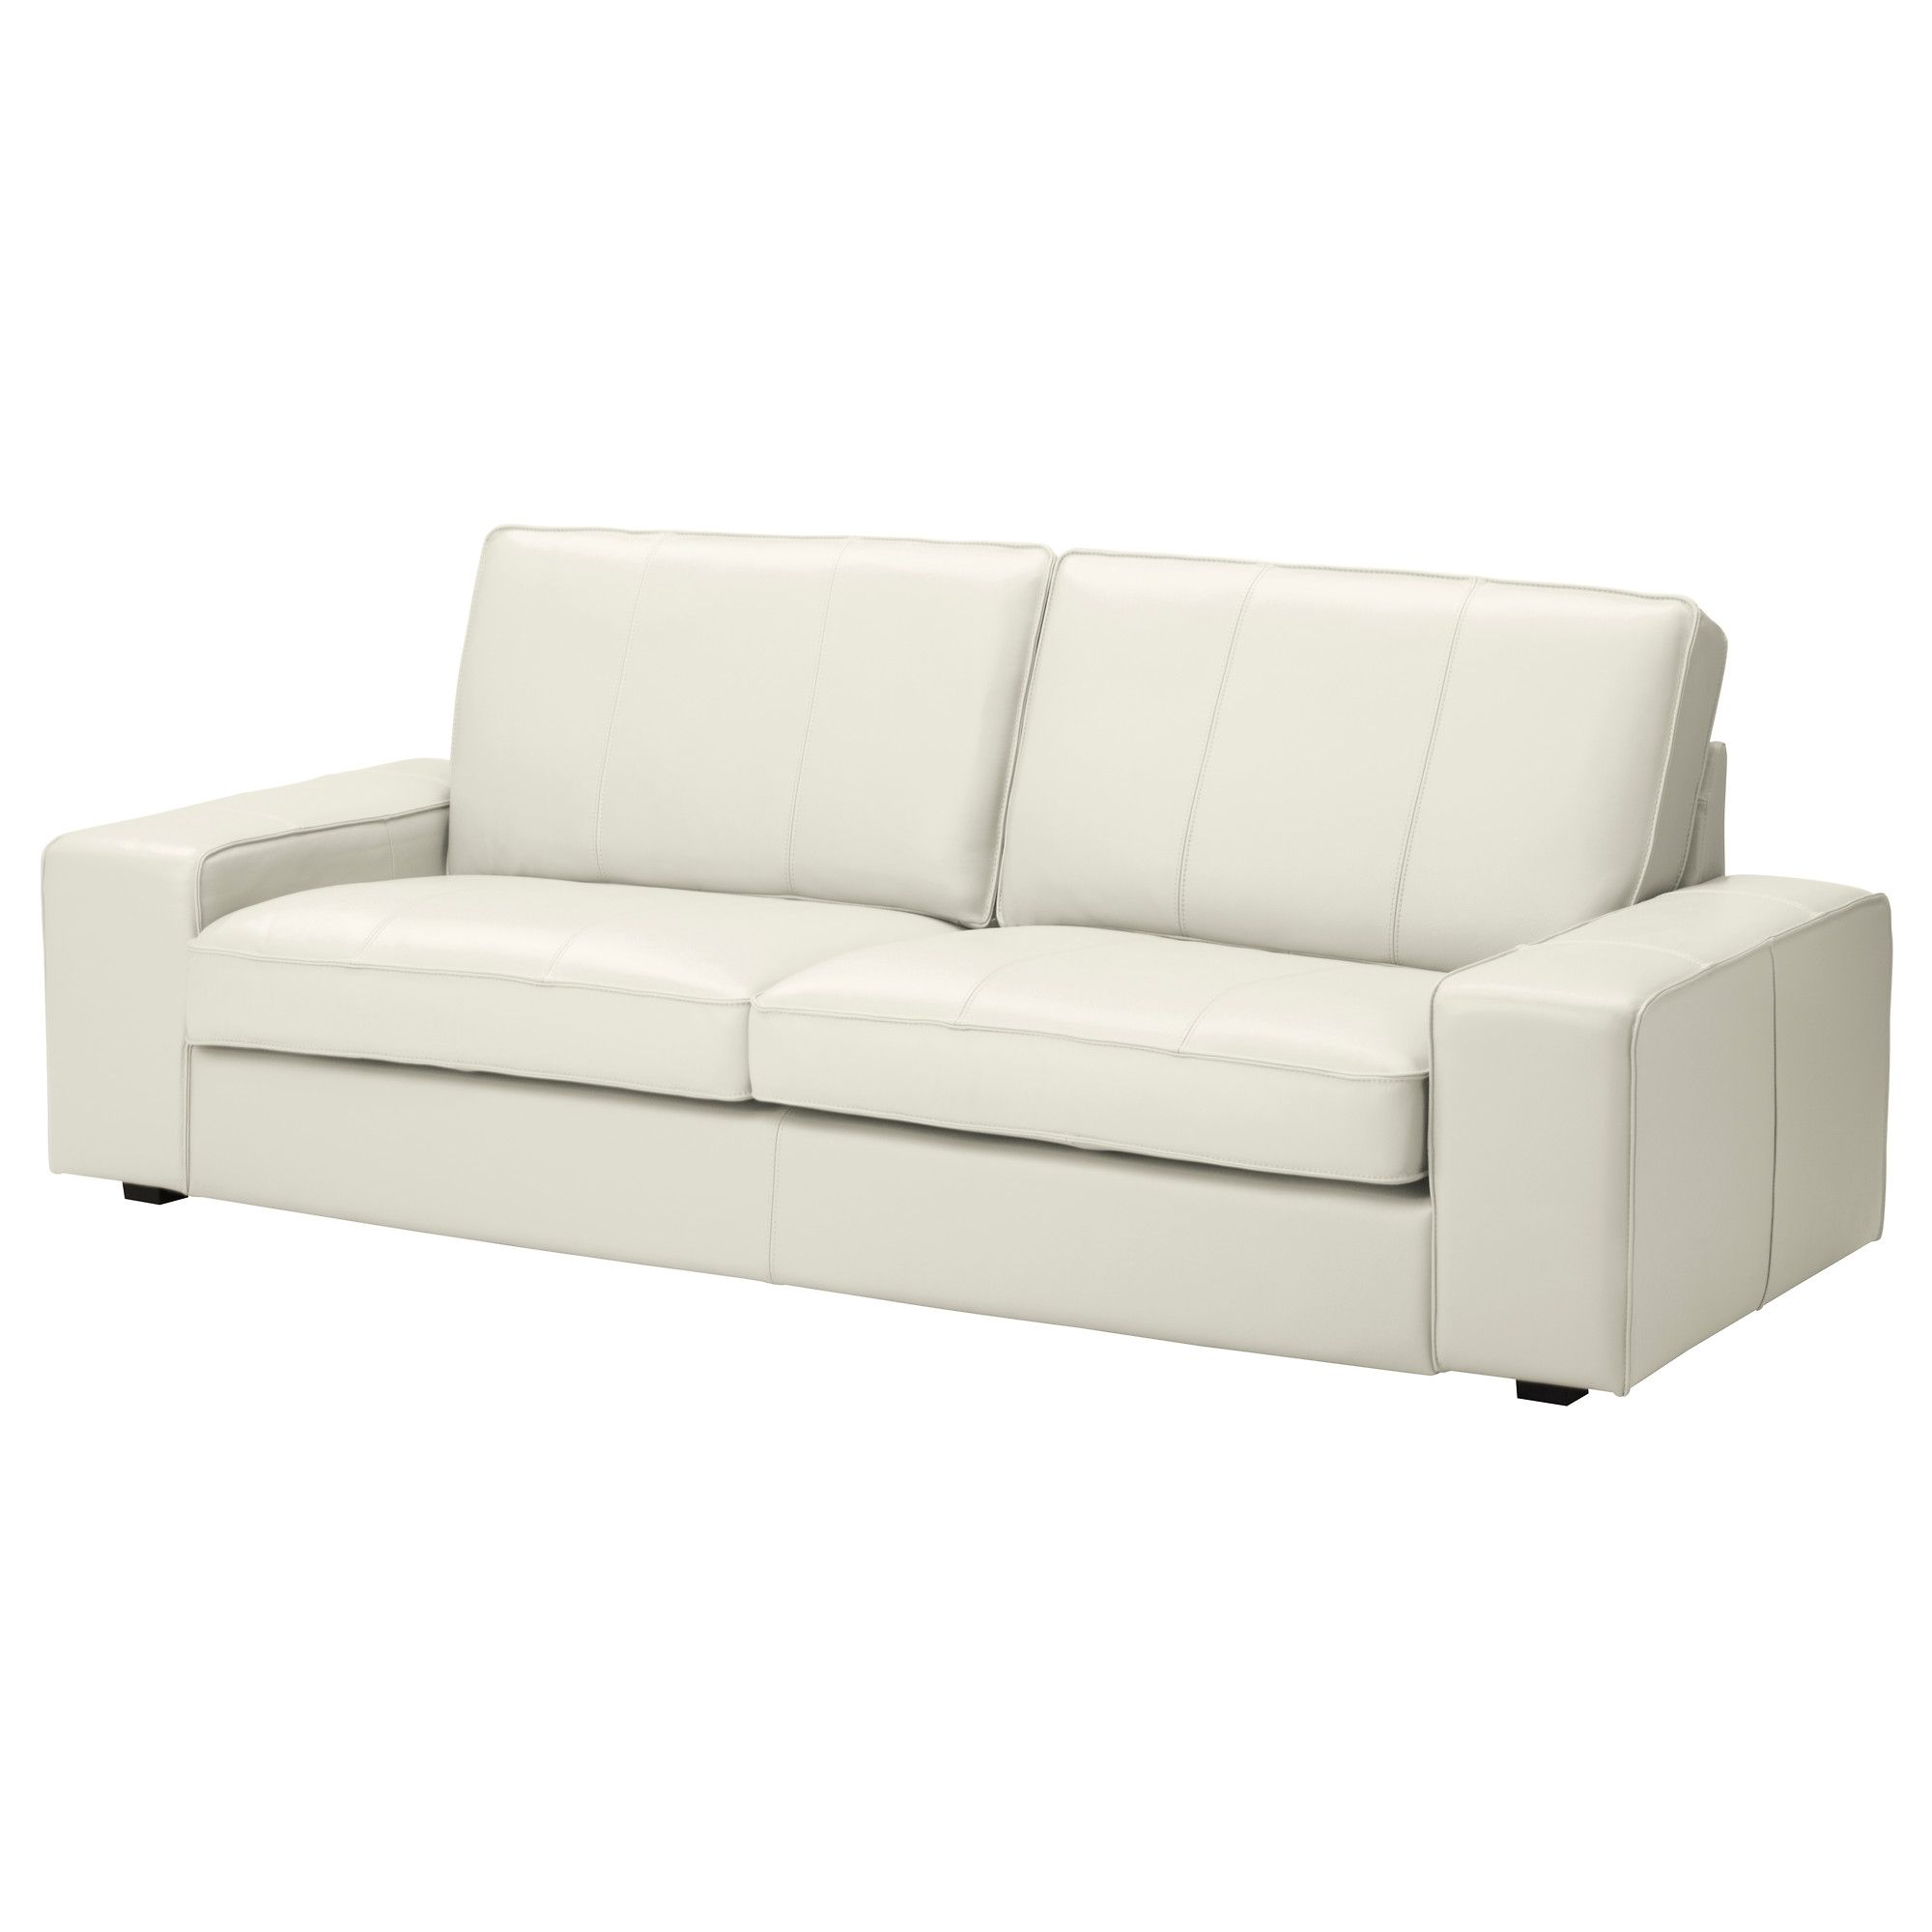 Kivik Sofa Leather Kivik Sofa Grann White Ikea Hairstyles Sofa Ikea Ikea Sofa